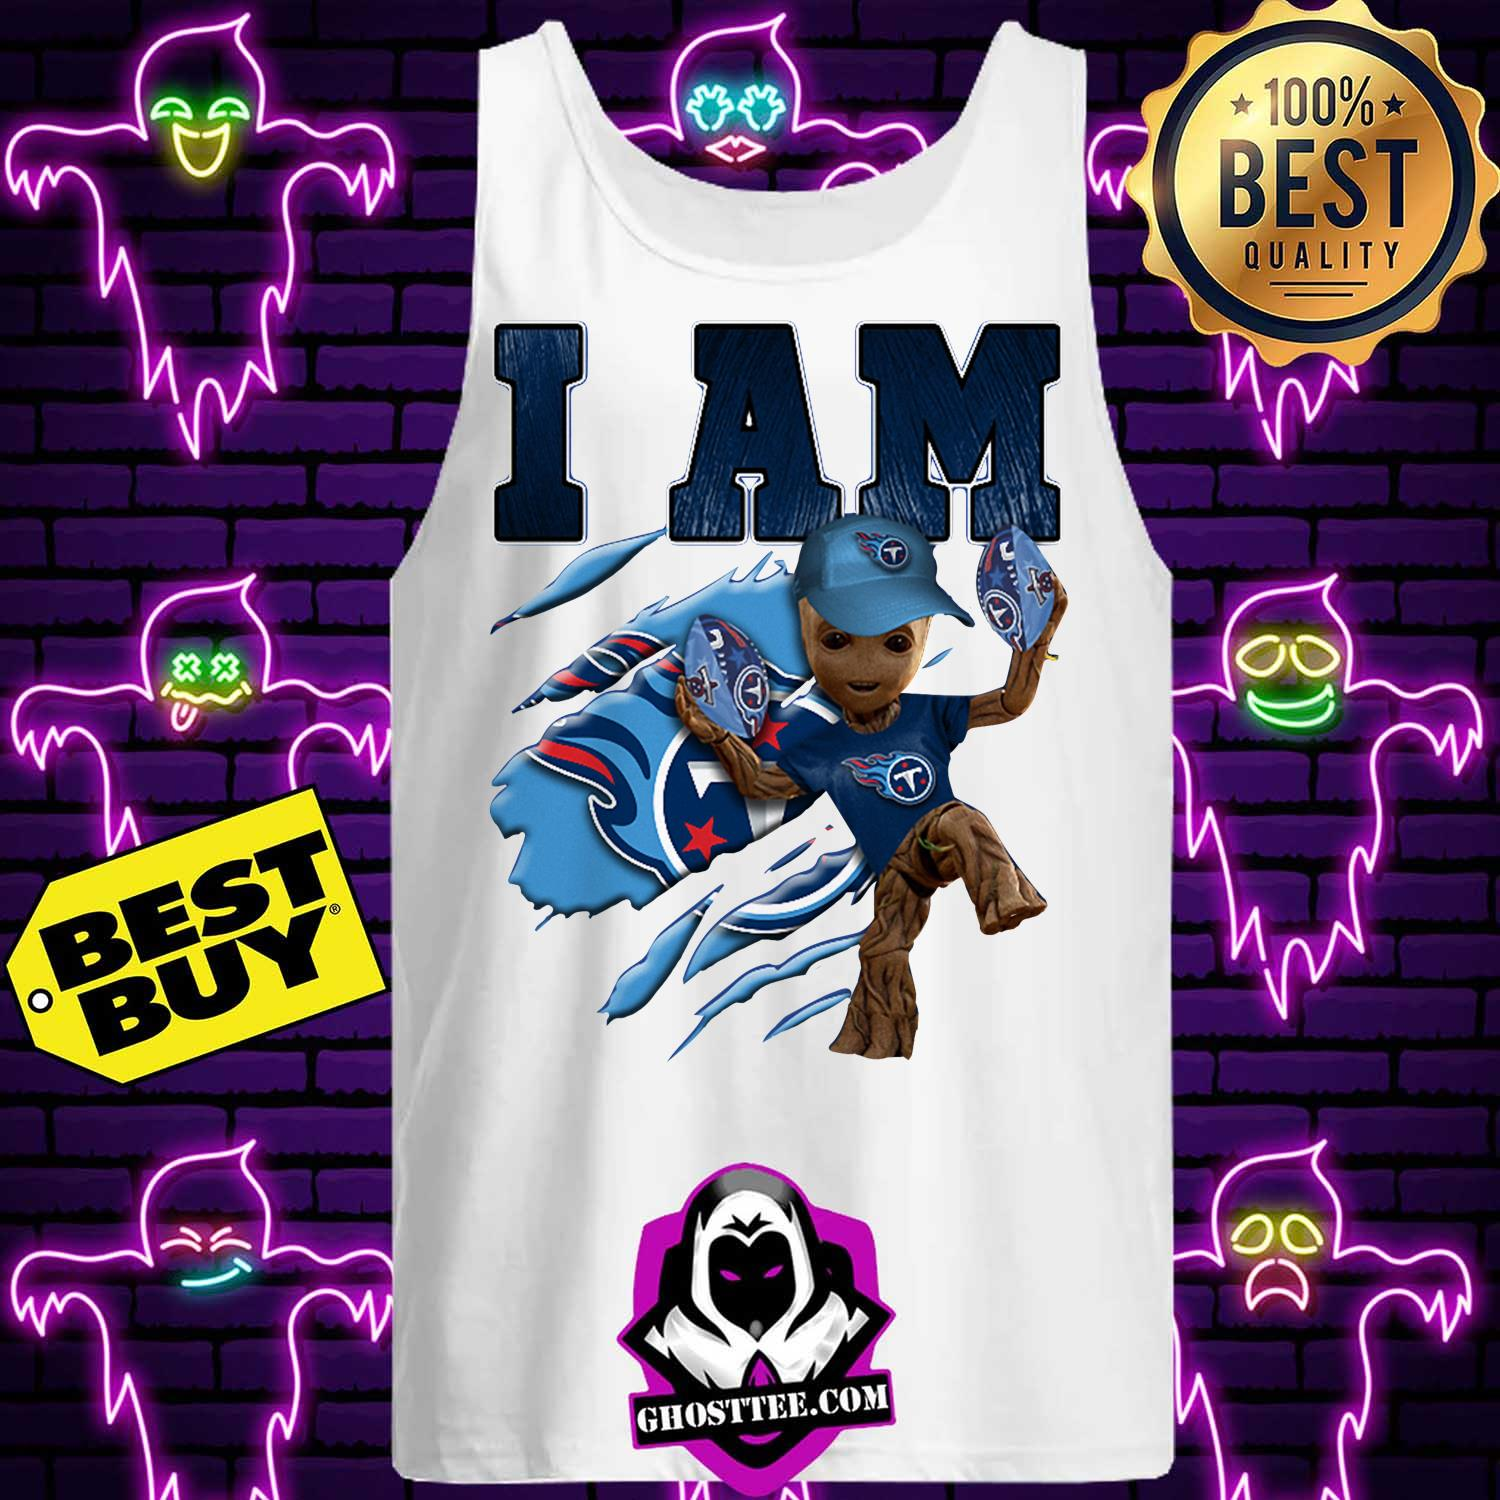 tennessee titans i am groot tank top - Tennessee Titans I am Groot shirt